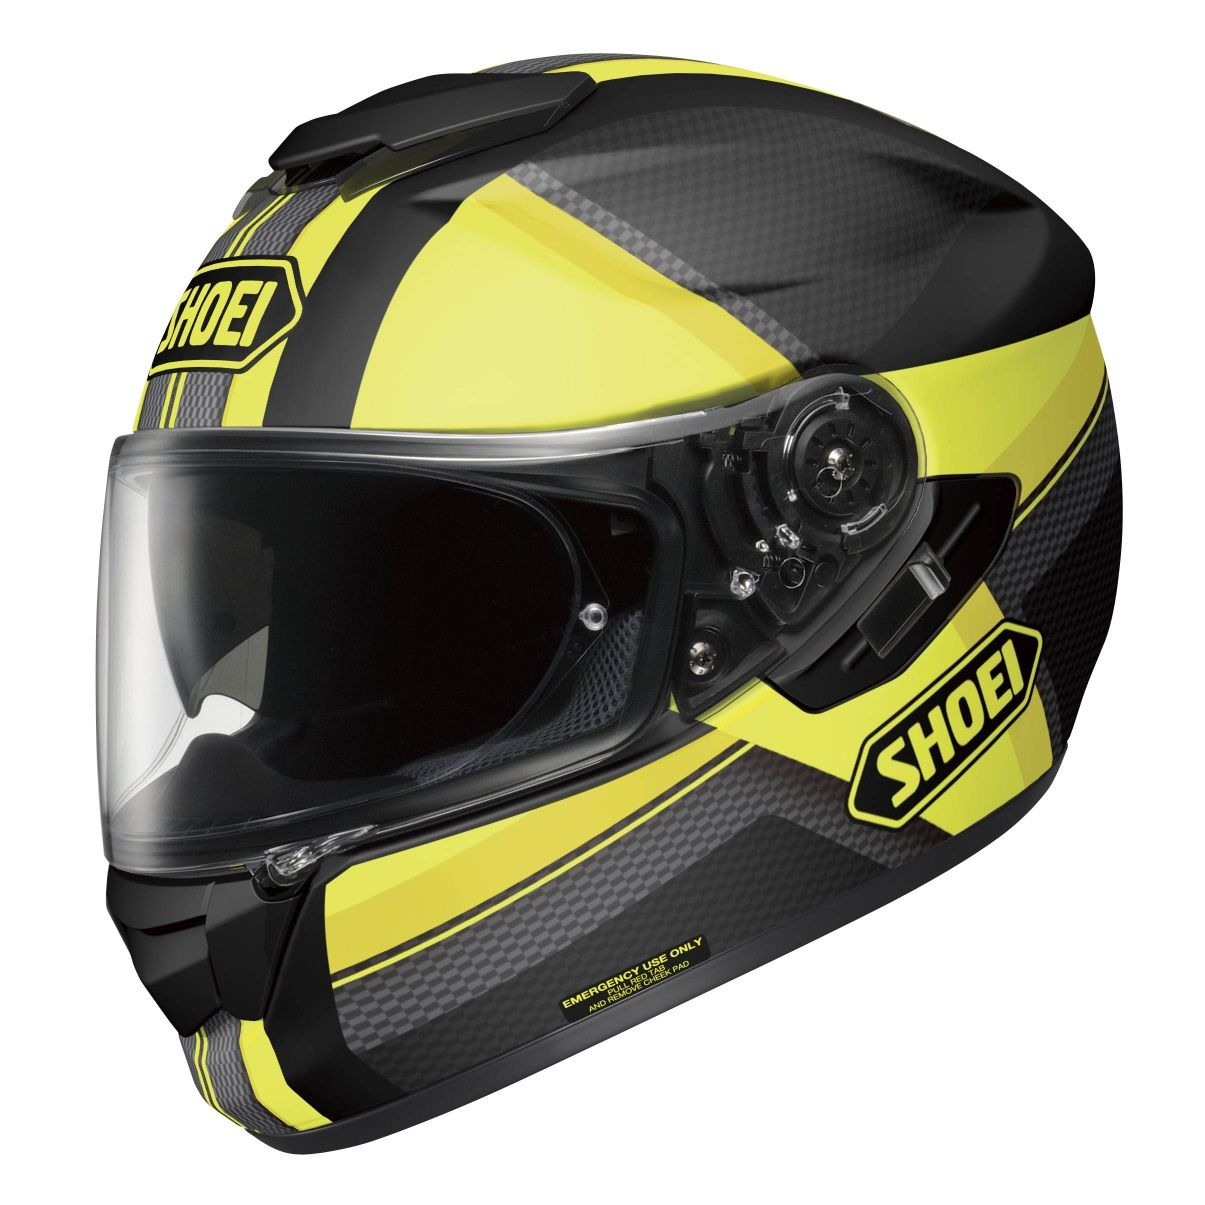 Shoei GTAir Exposure Motorcycle helmets